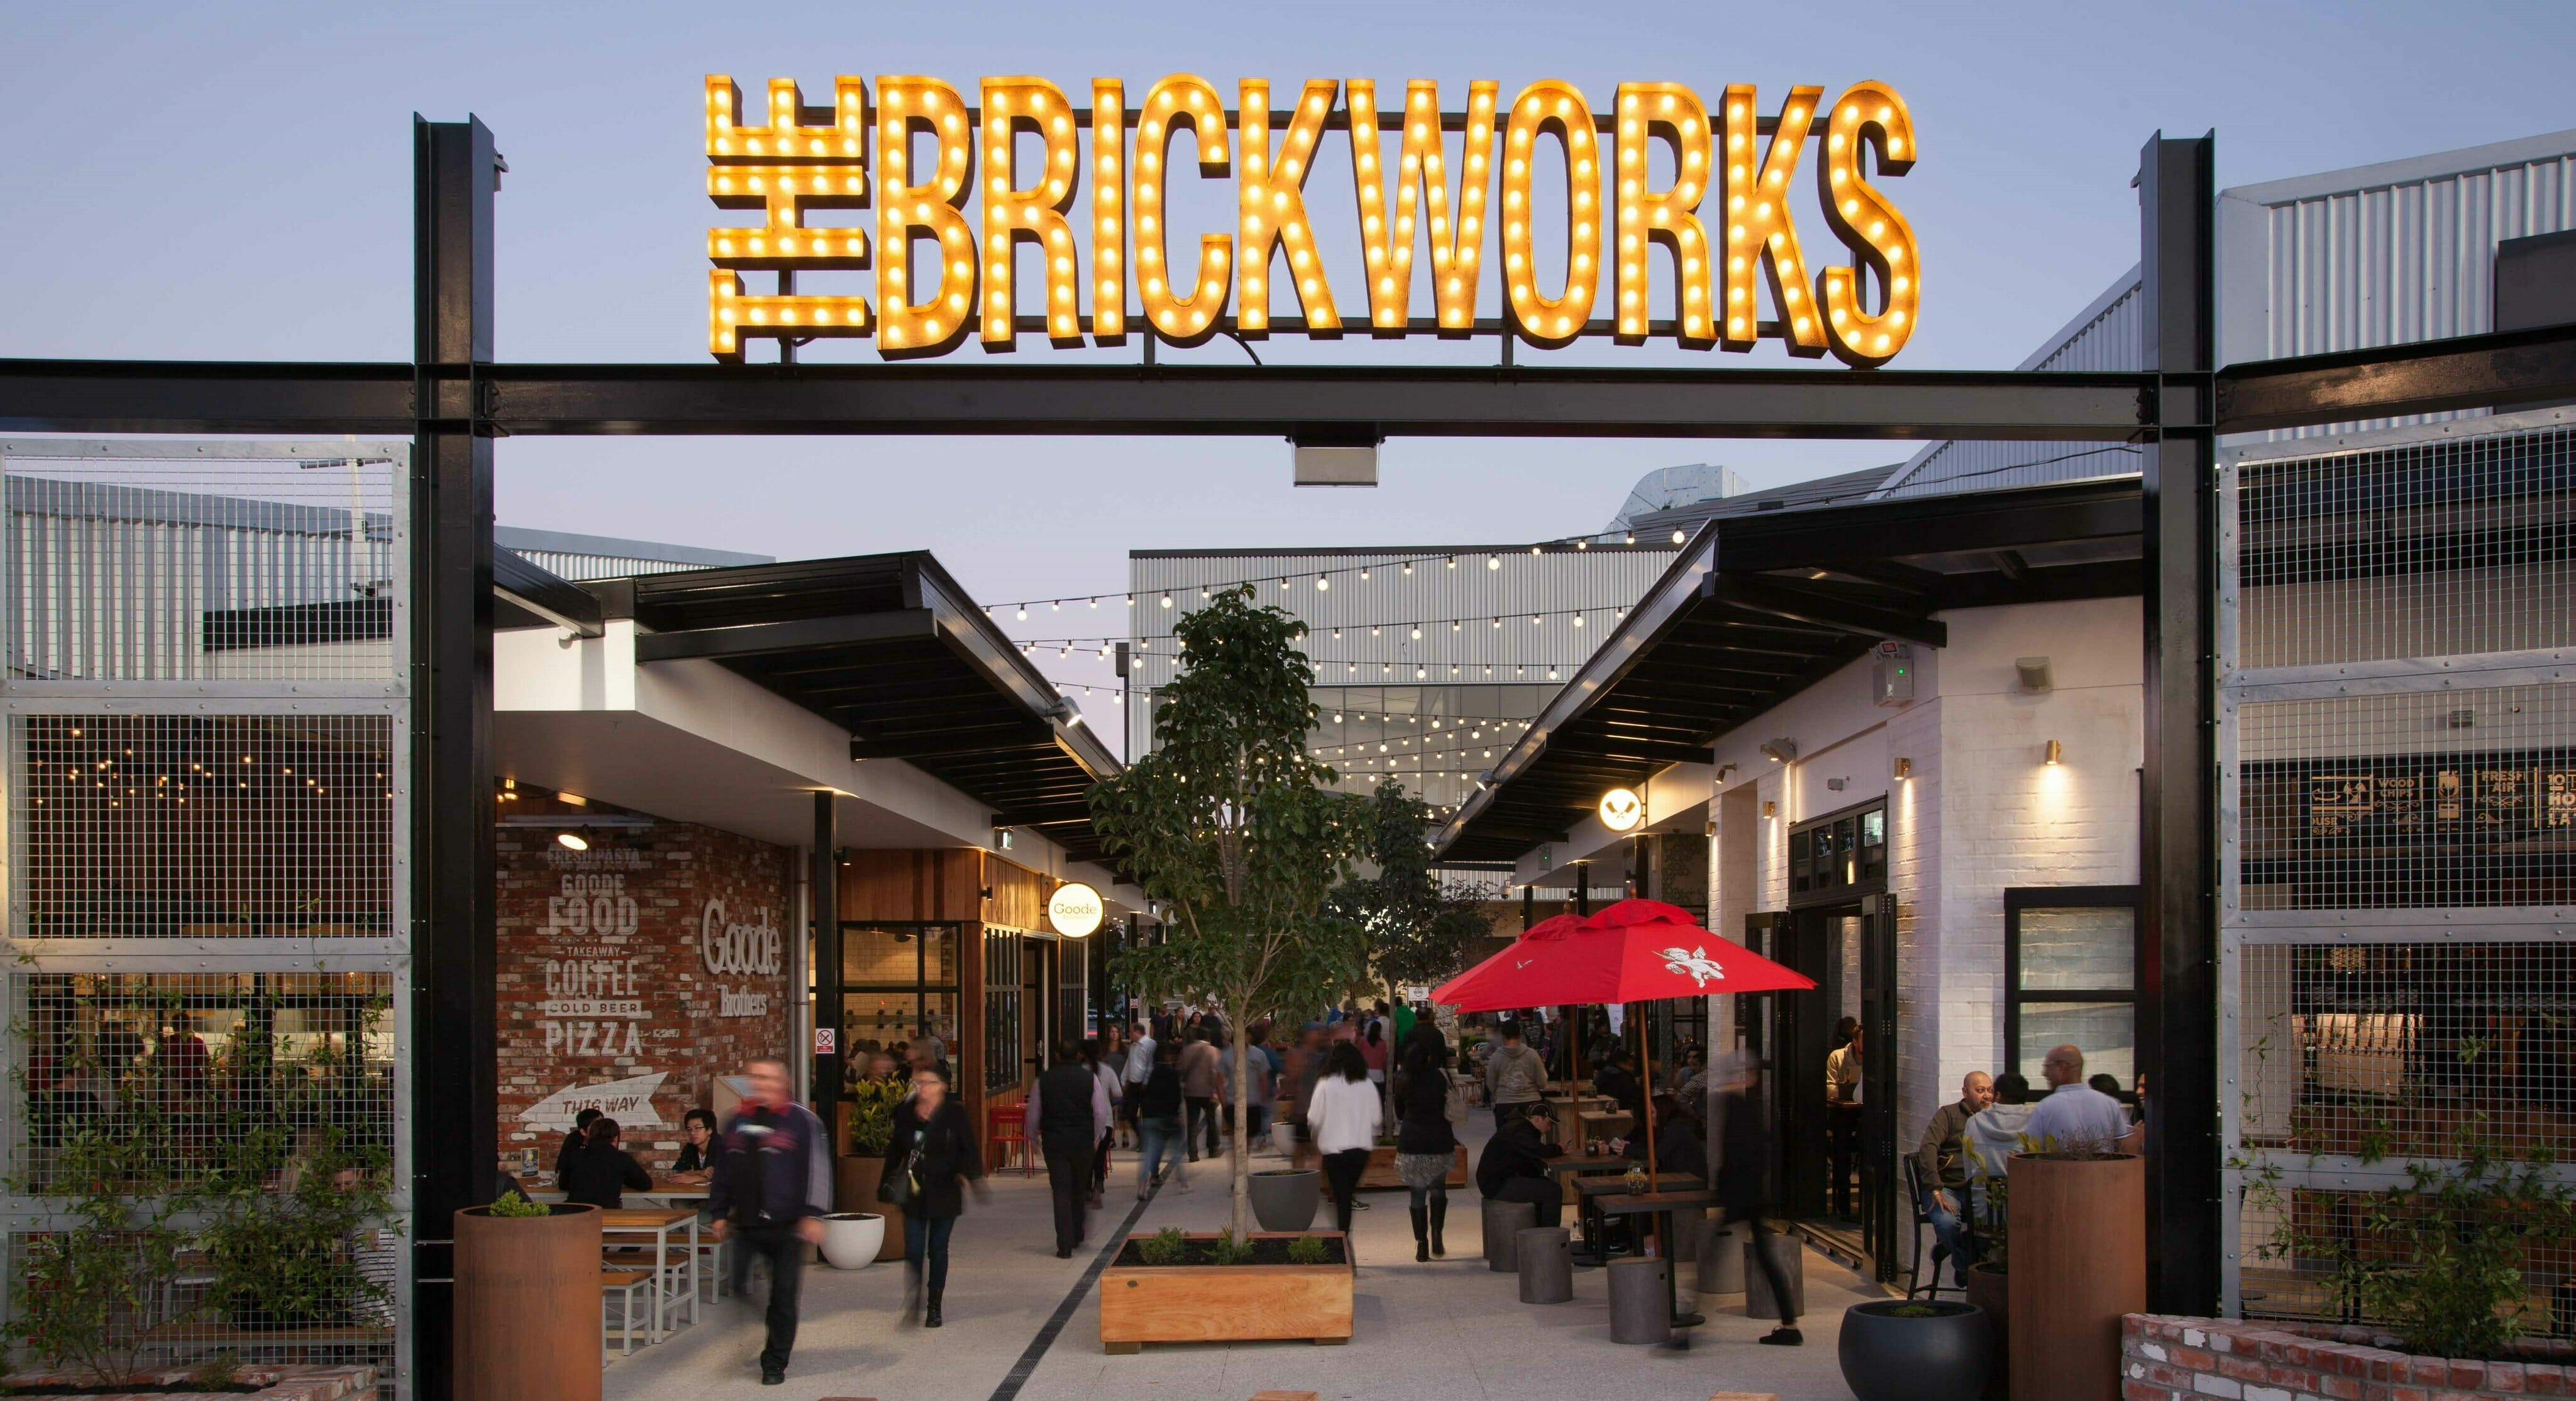 All about The Brickworks